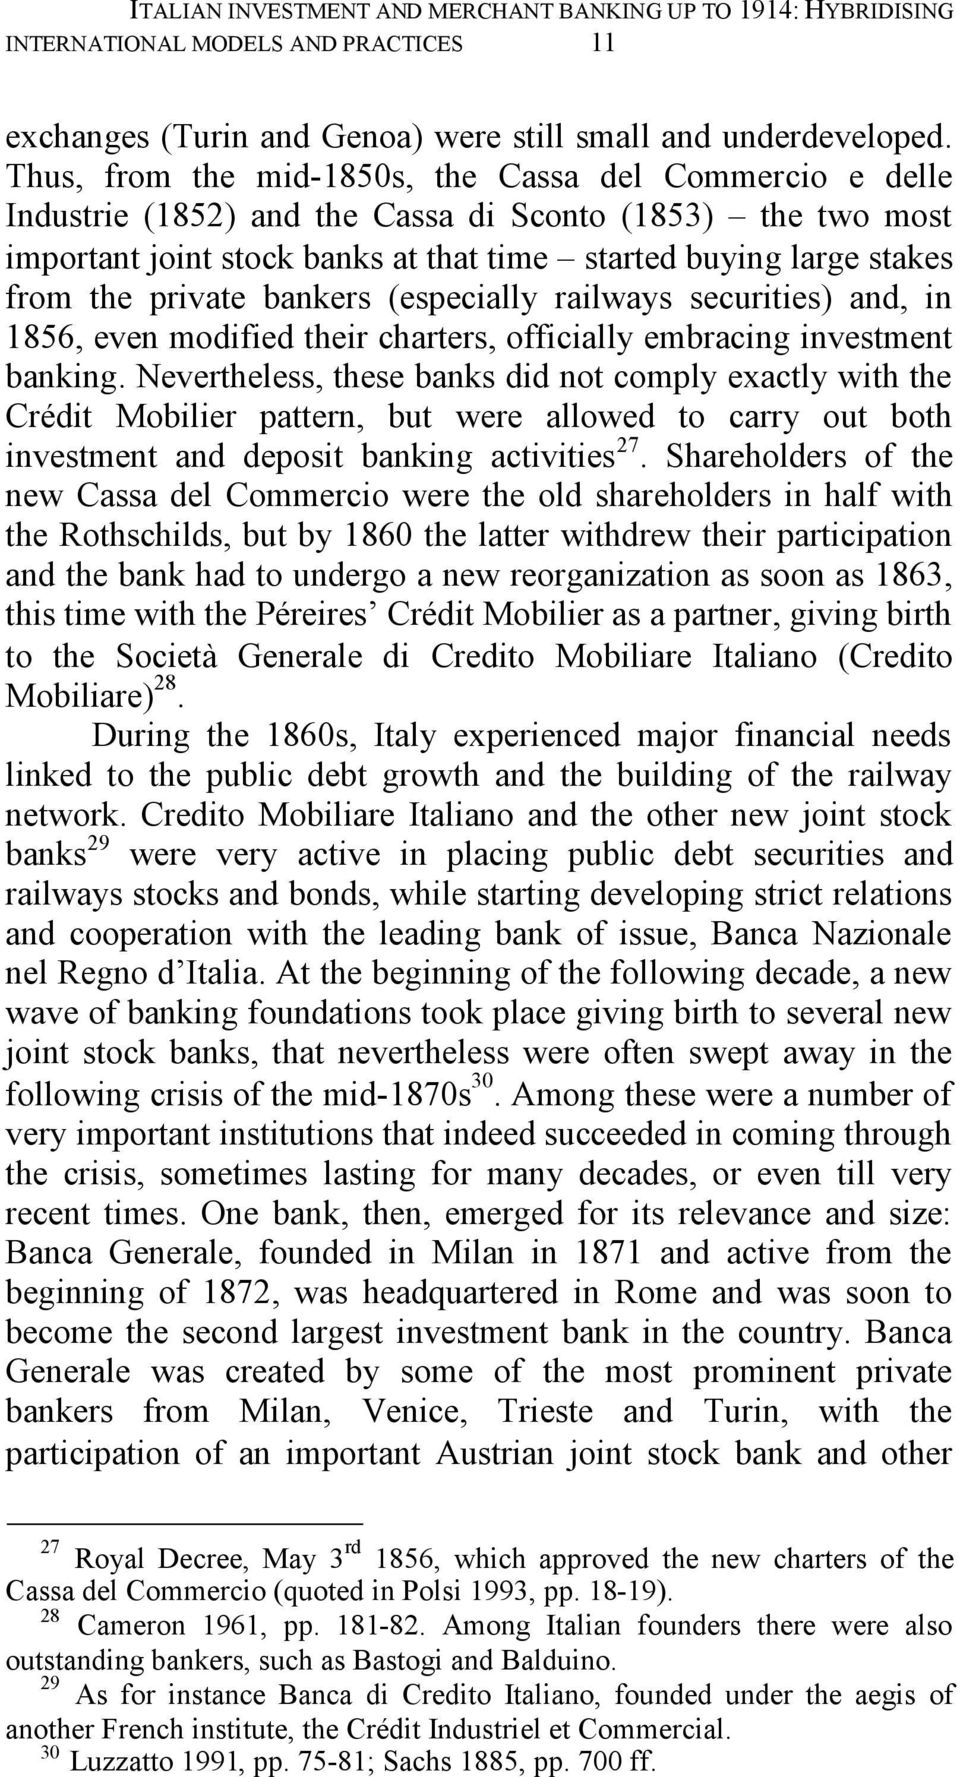 private bankers (especially railways securities) and, in 1856, even modified their charters, officially embracing investment banking.